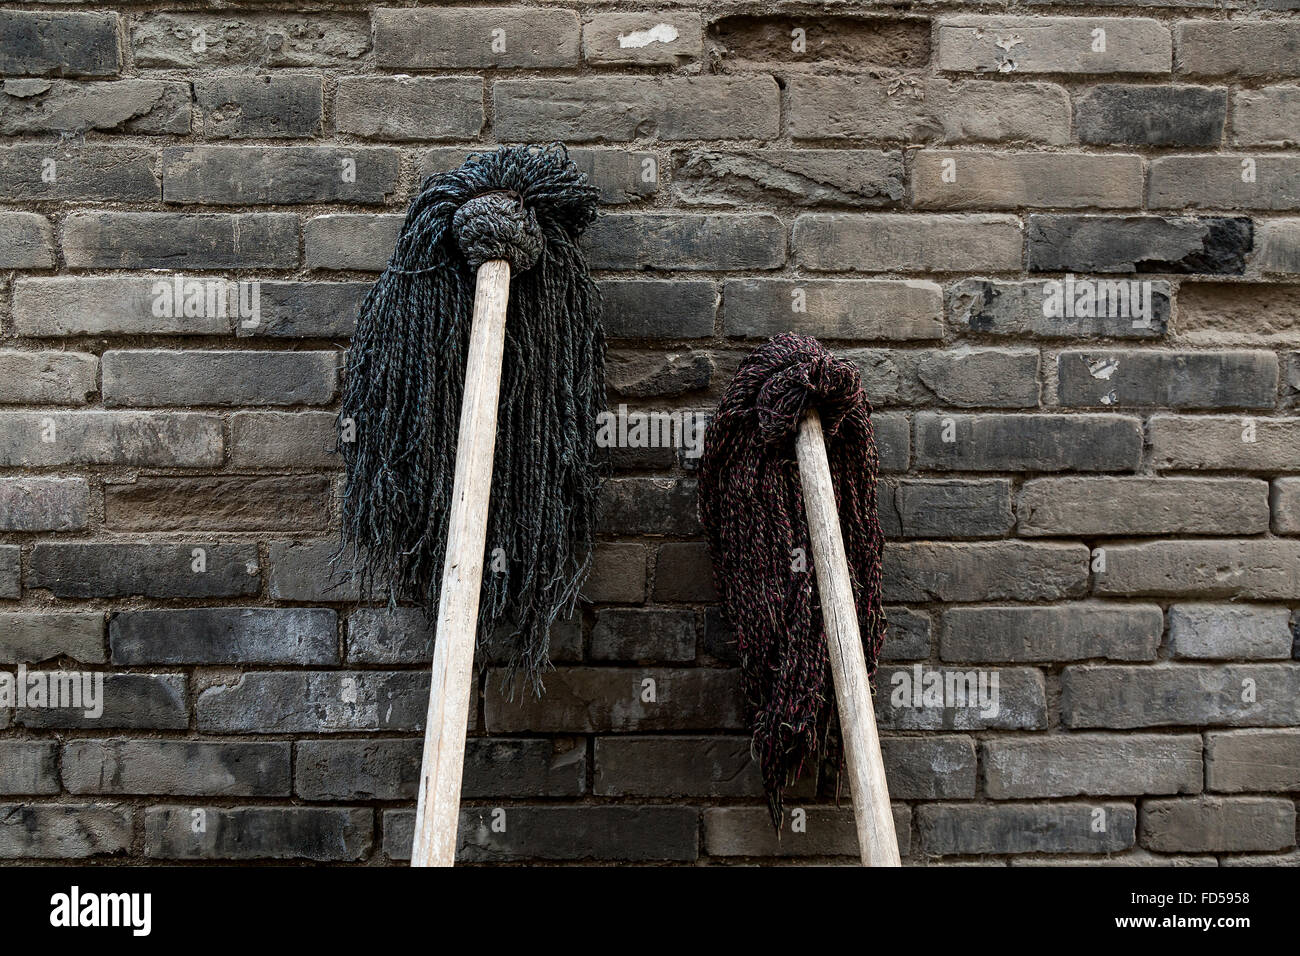 Mops against an old brick wall in Xi'an, China. - Stock Image